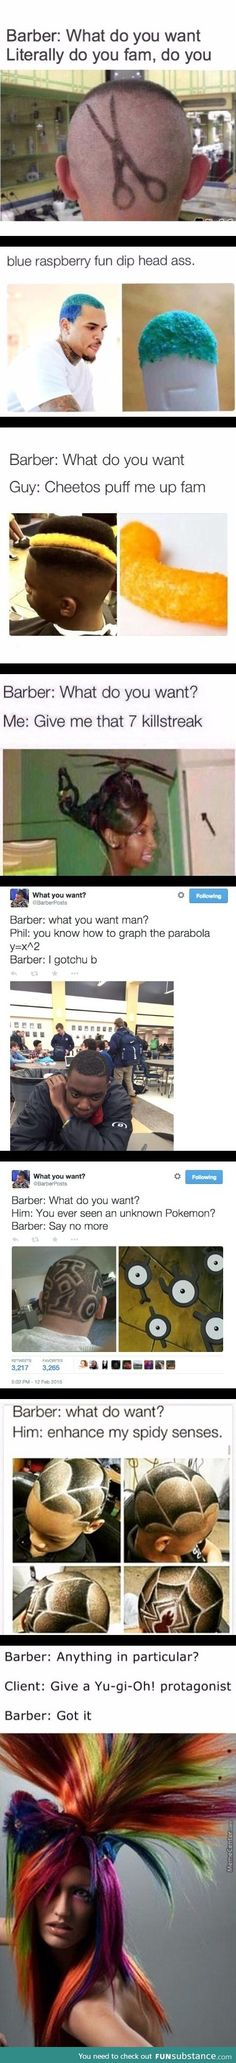 Barber meme comp.